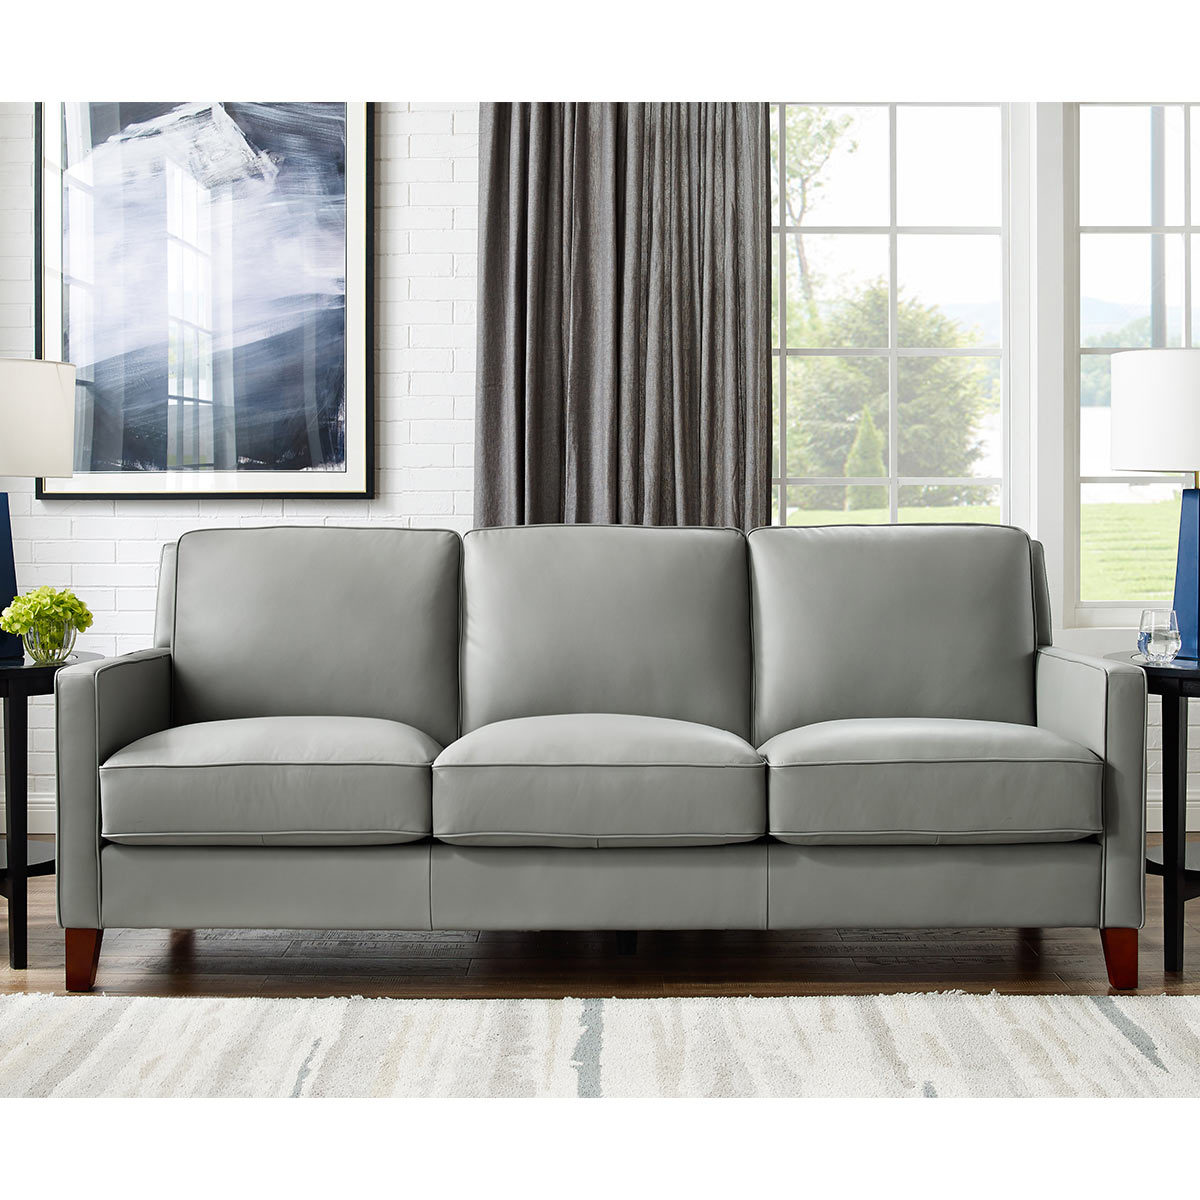 West Park 3 Seater Light Grey Leather Sofa Costco Uk